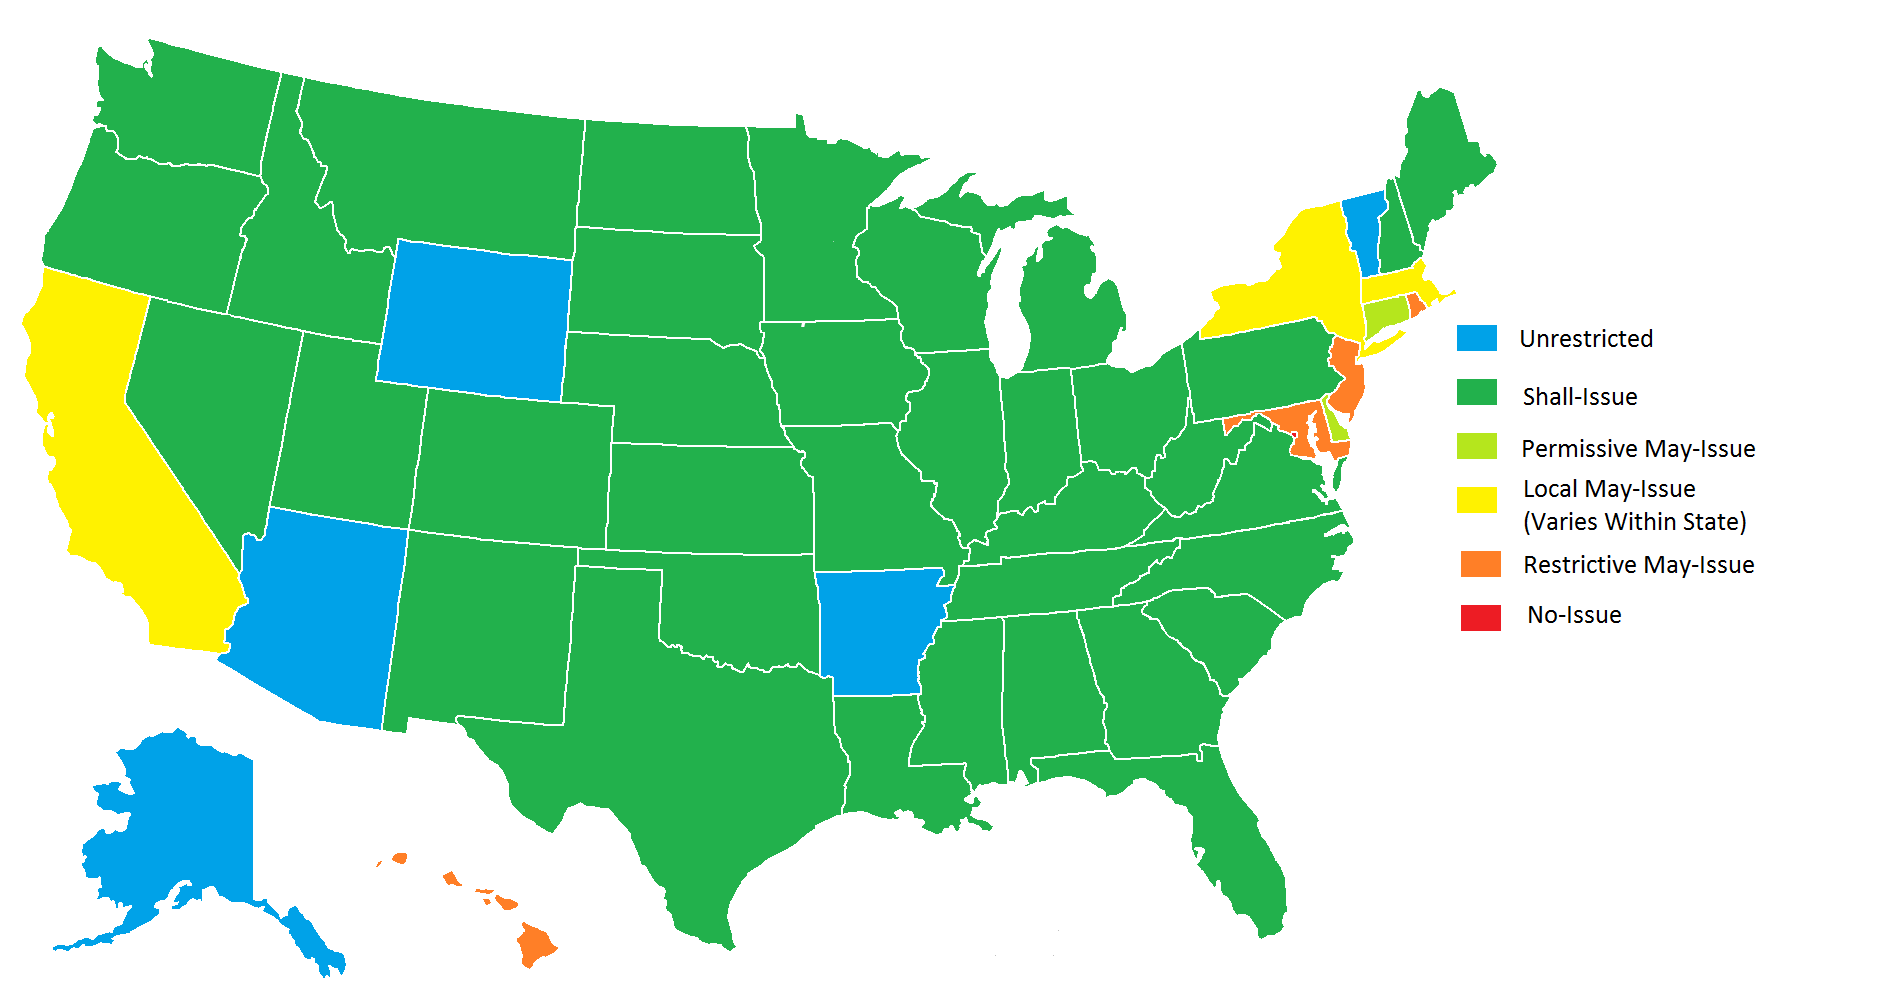 shall issue states map Concealed Carry Breakdown Where May Issue Is Essentially No